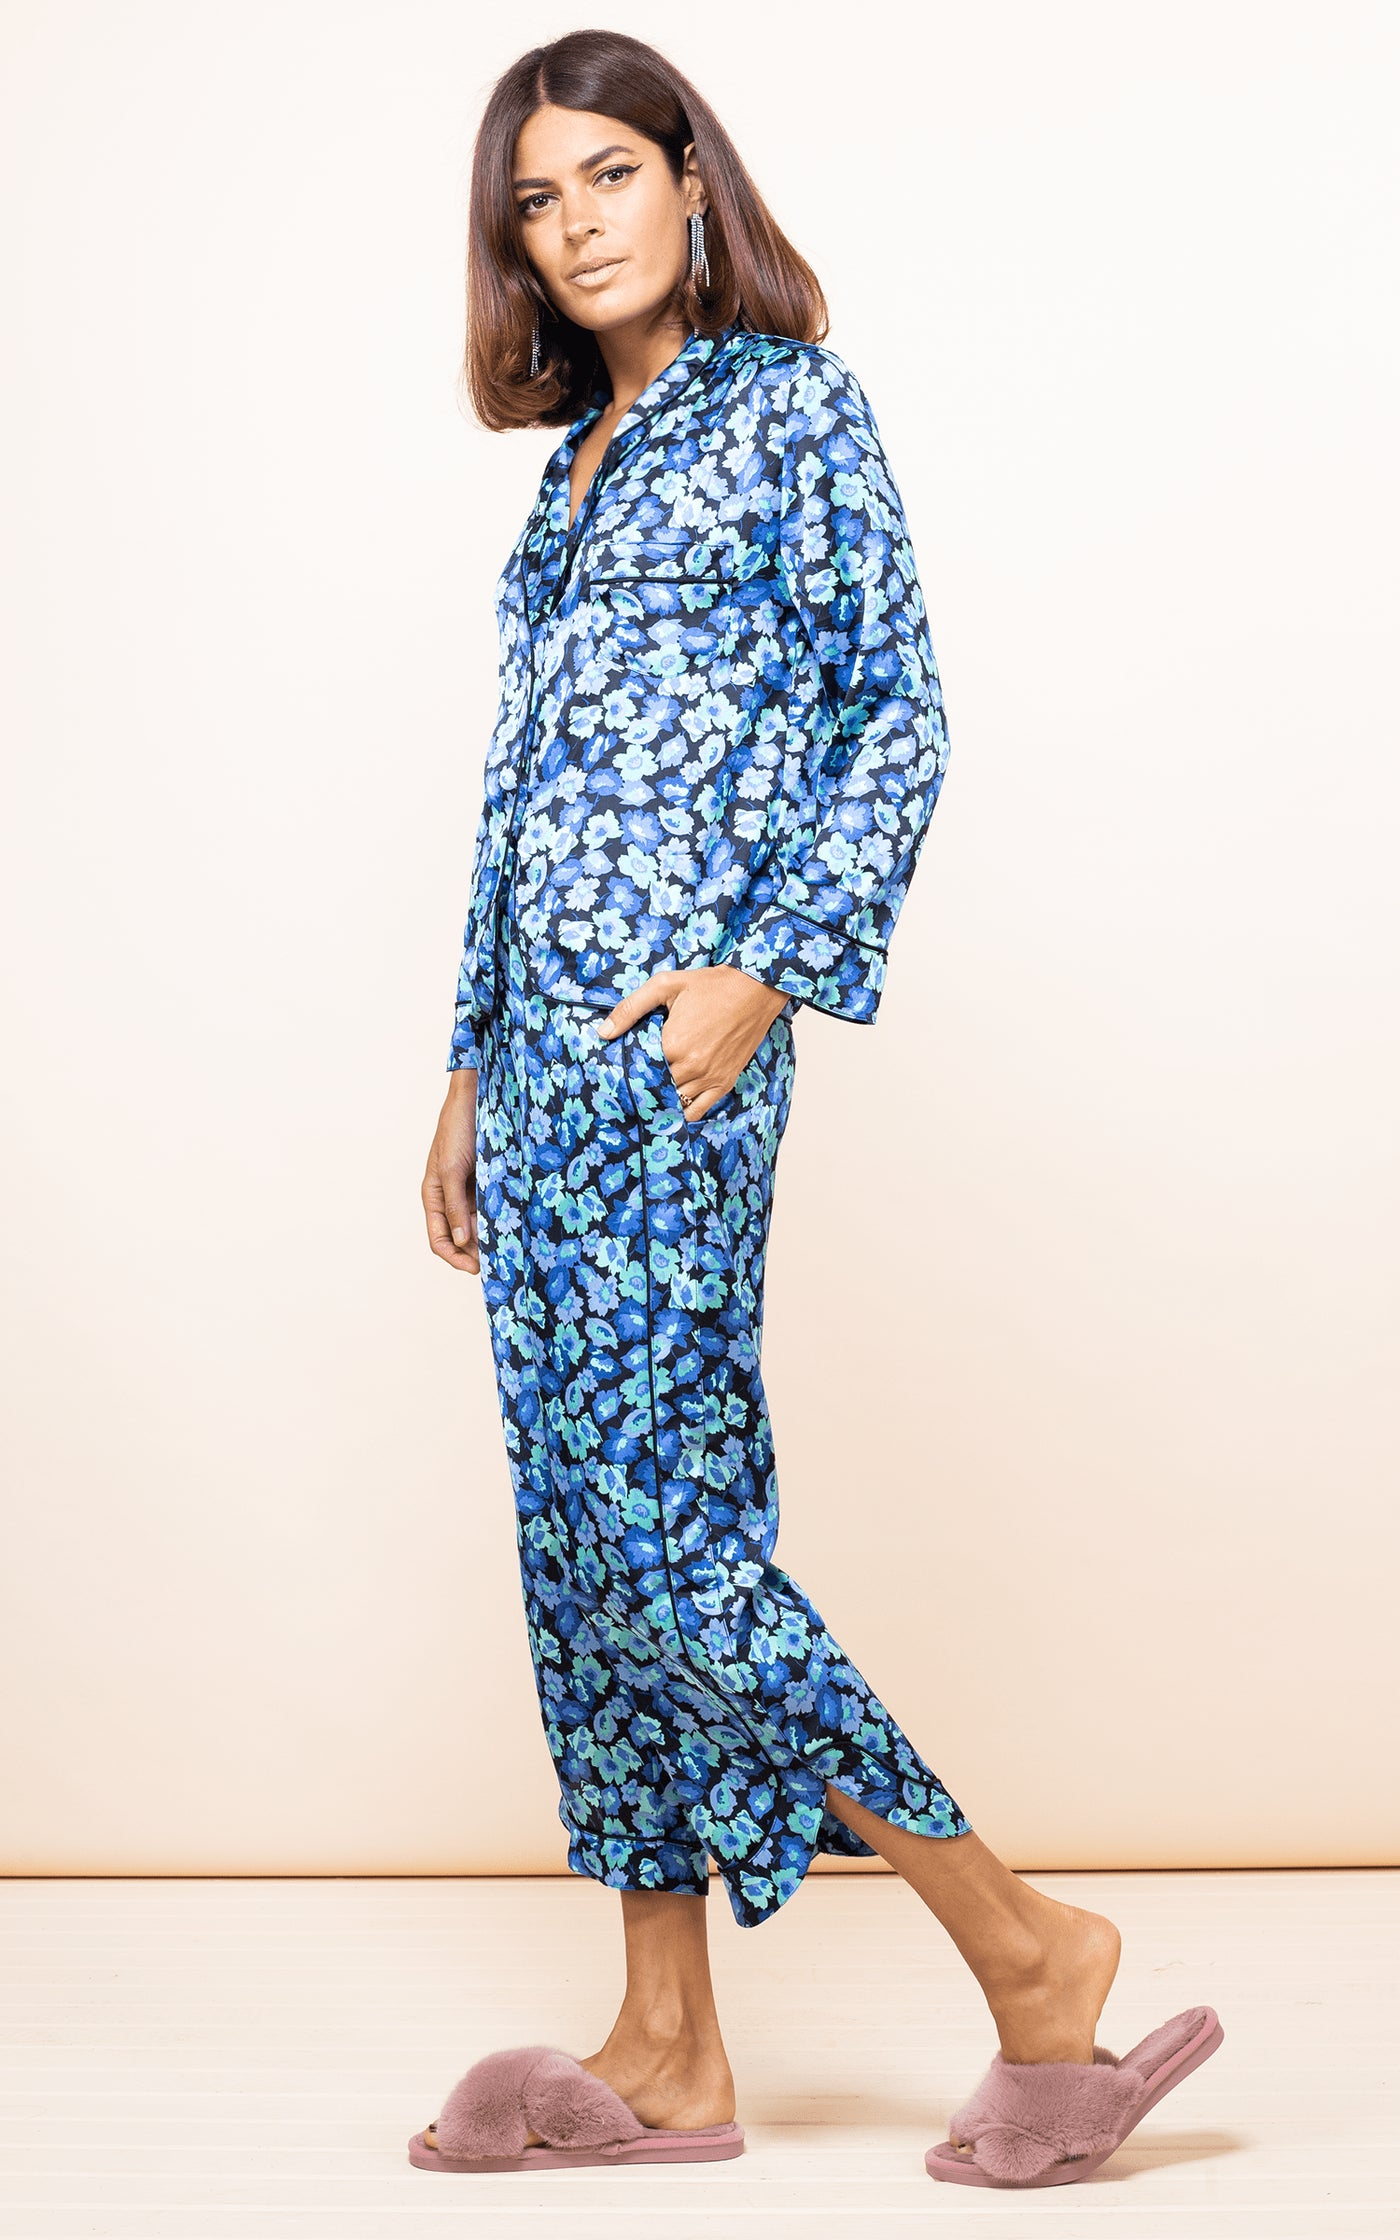 Dancing Leopard model walks forward wearing Enya PJ Set in 50s-inspired blue floral print with slippers